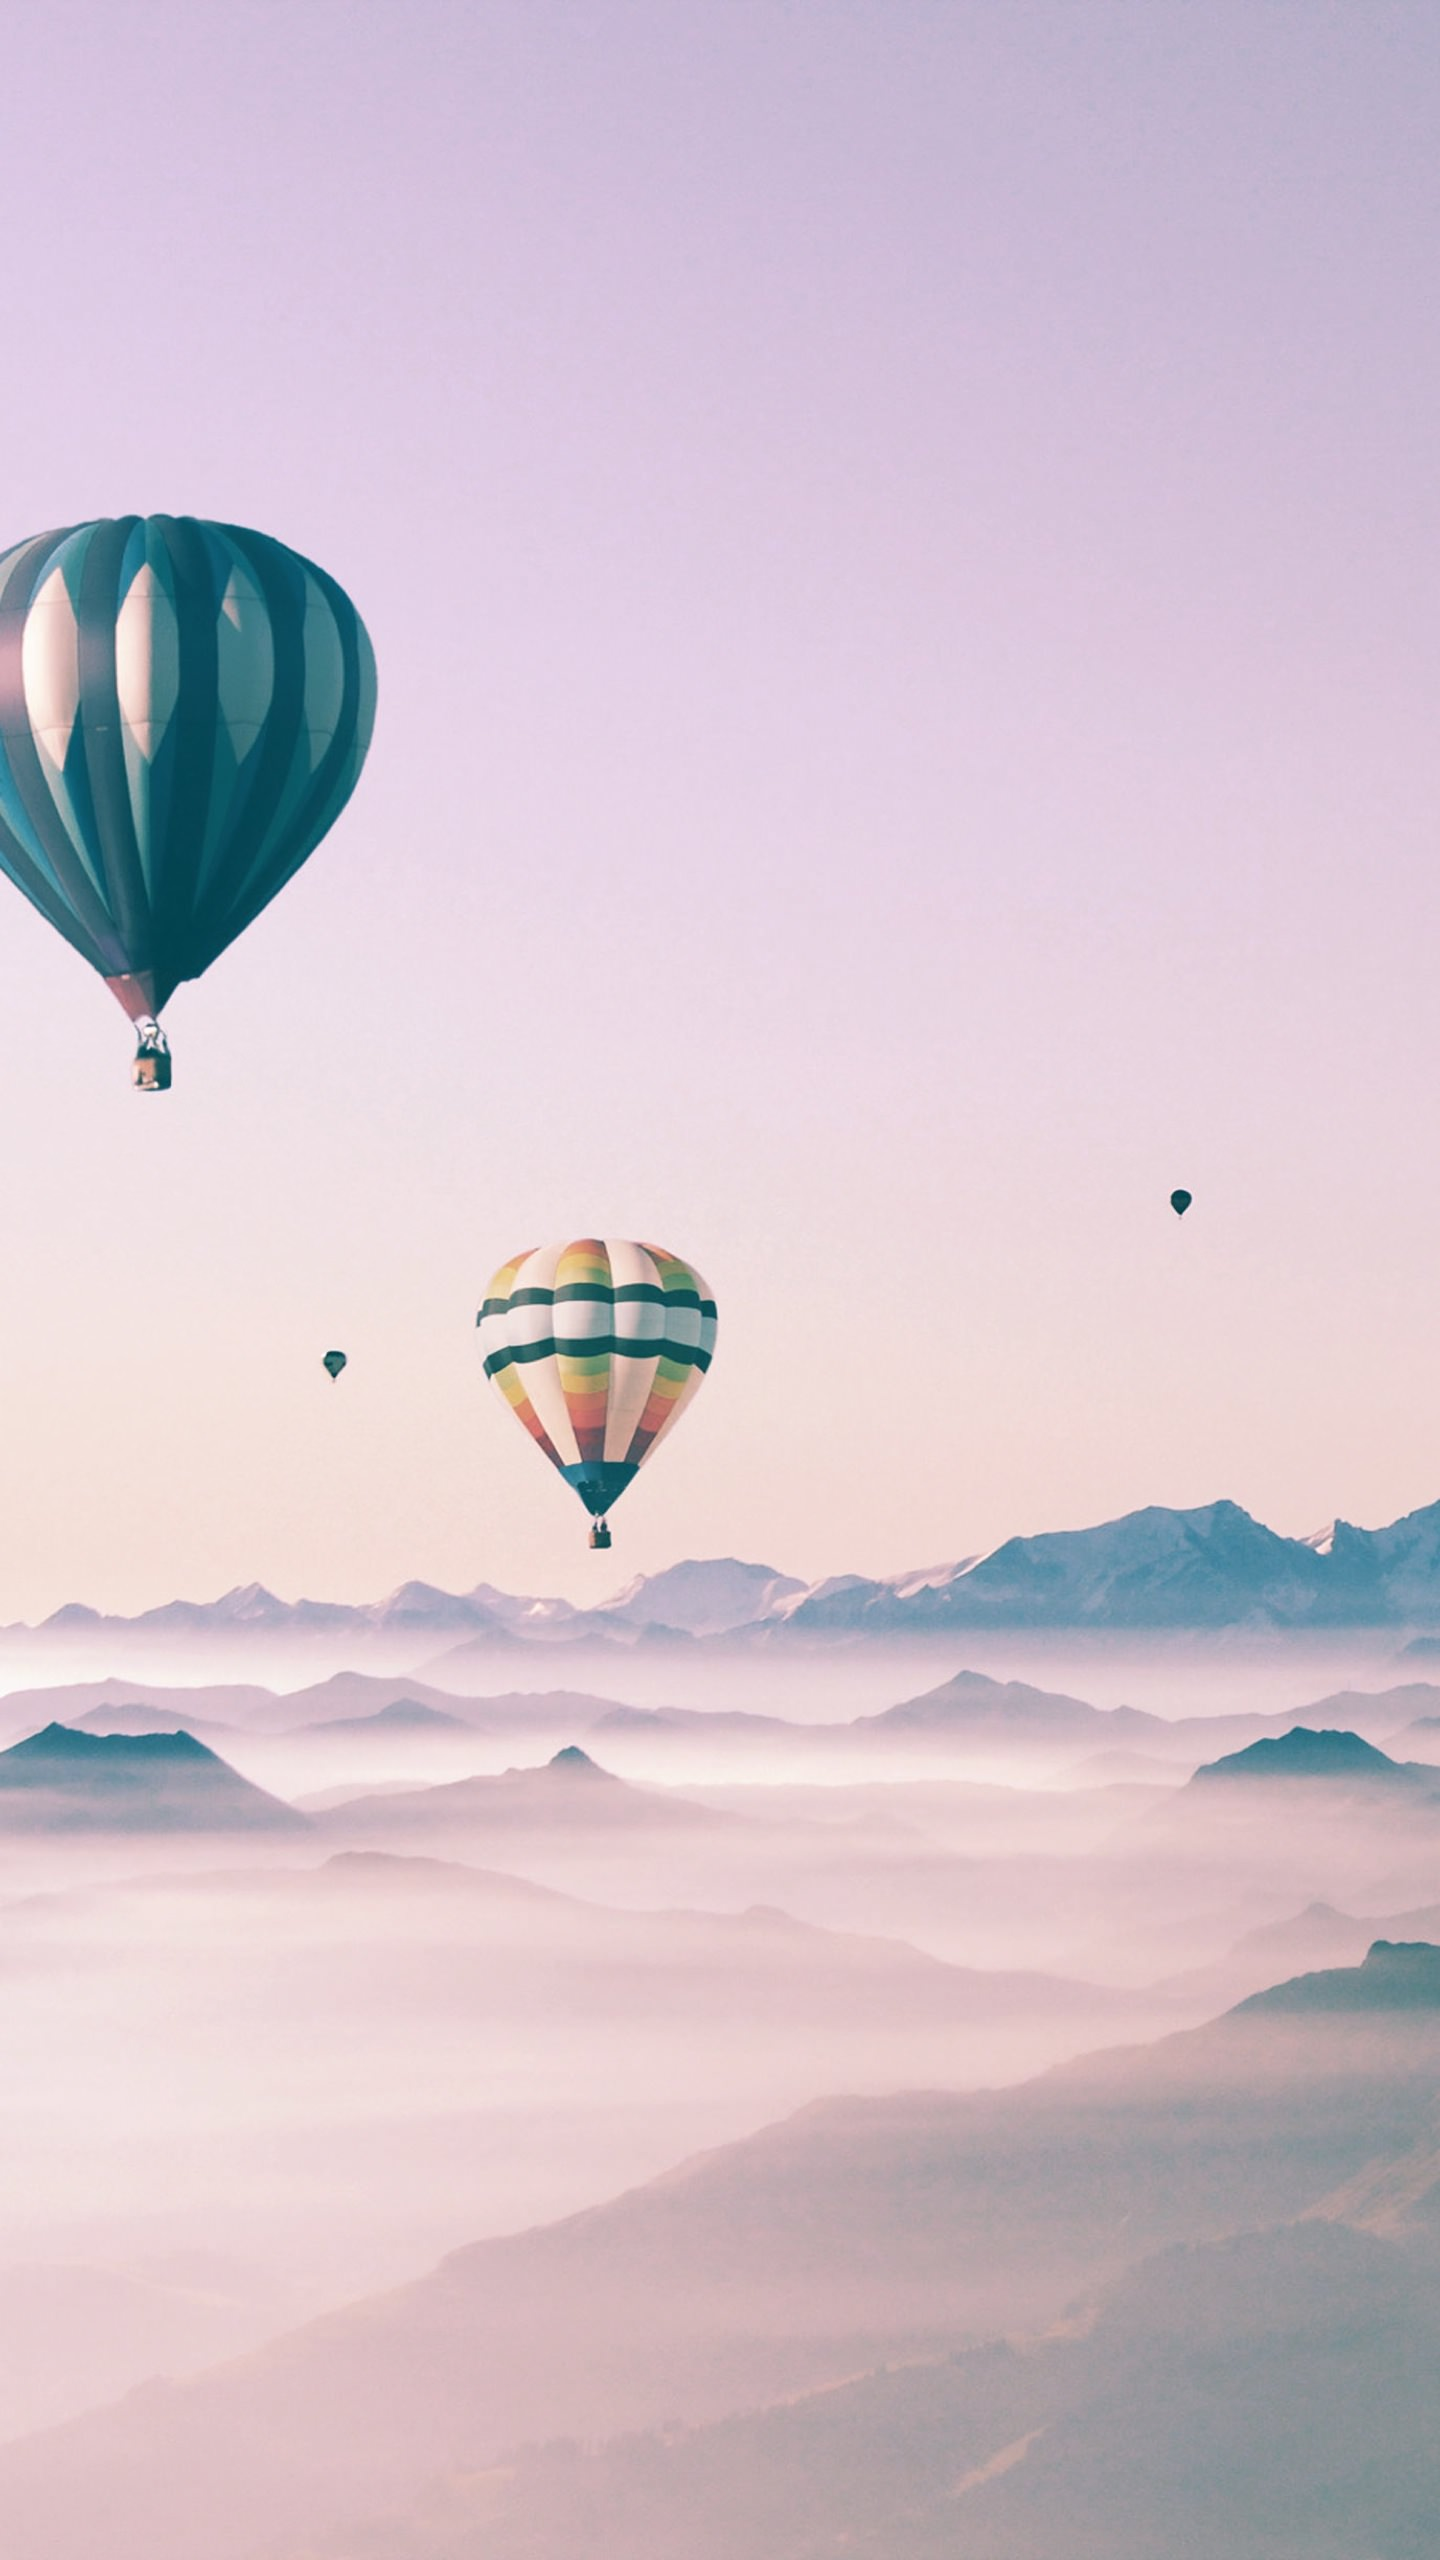 Cute landscape sky balloon for girls  wallpaper.sc SmartPhone